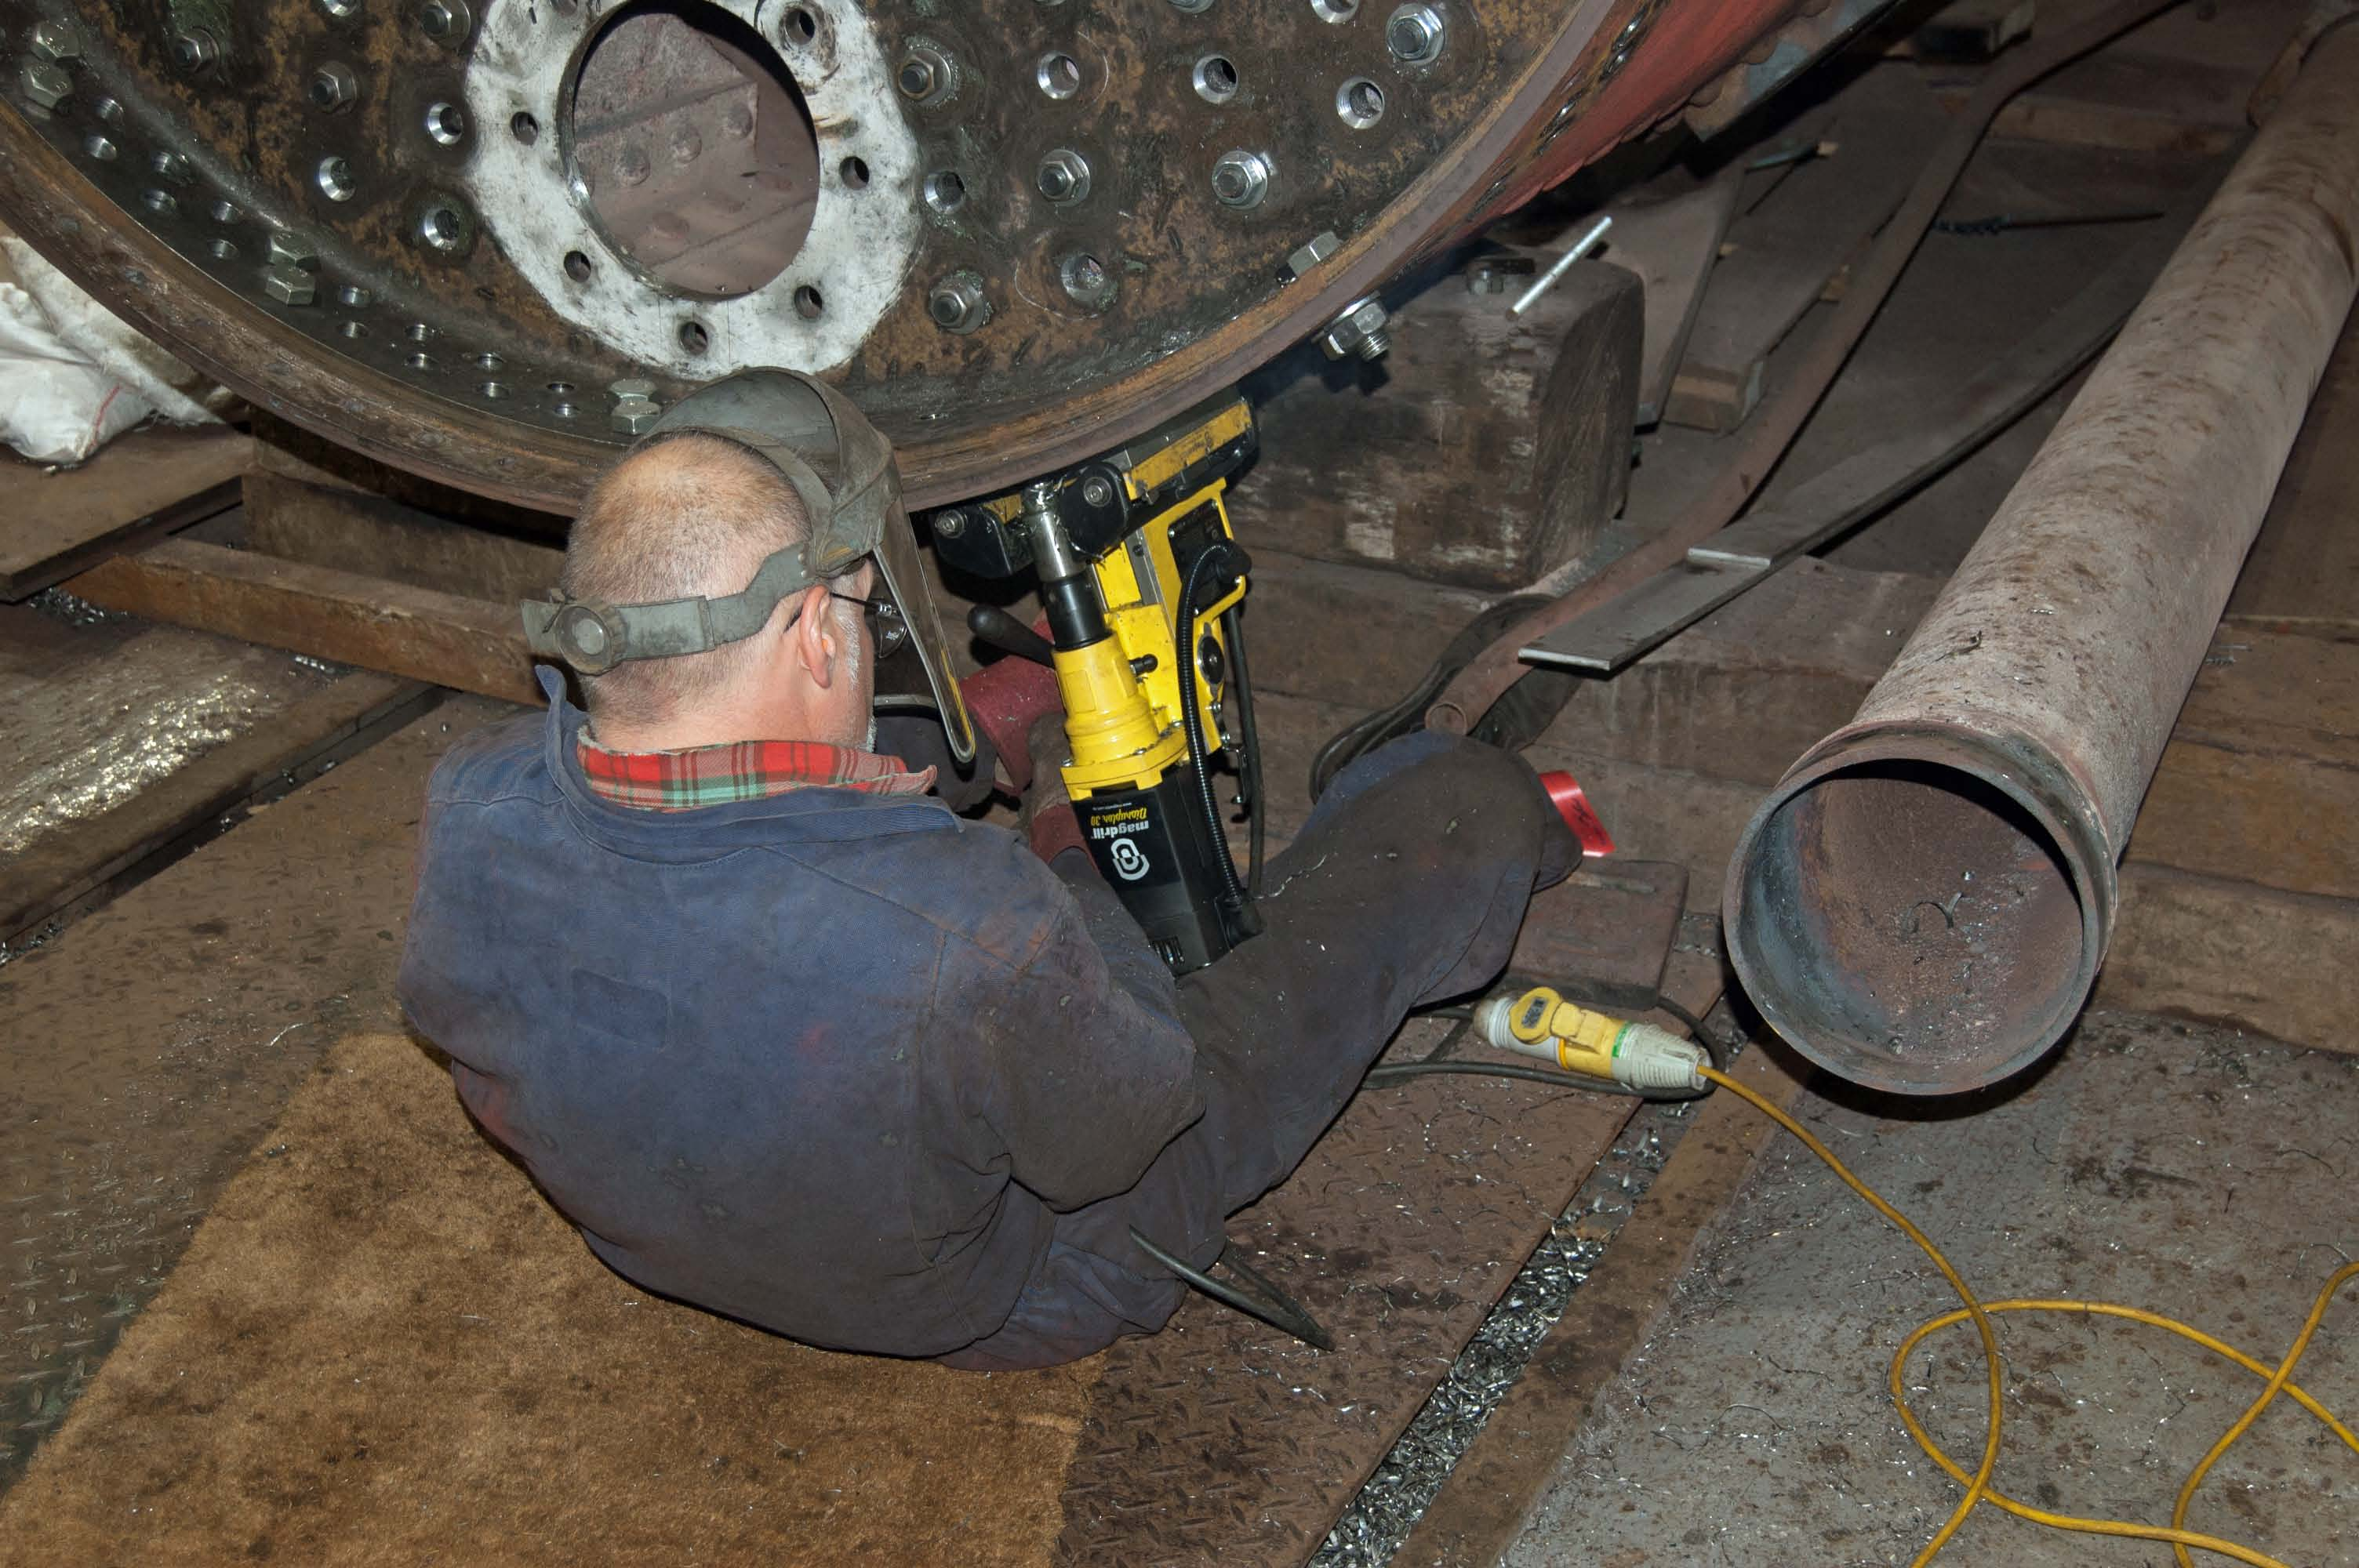 The new front tubeplate is in position, and the holes for the rivets are being drilled.